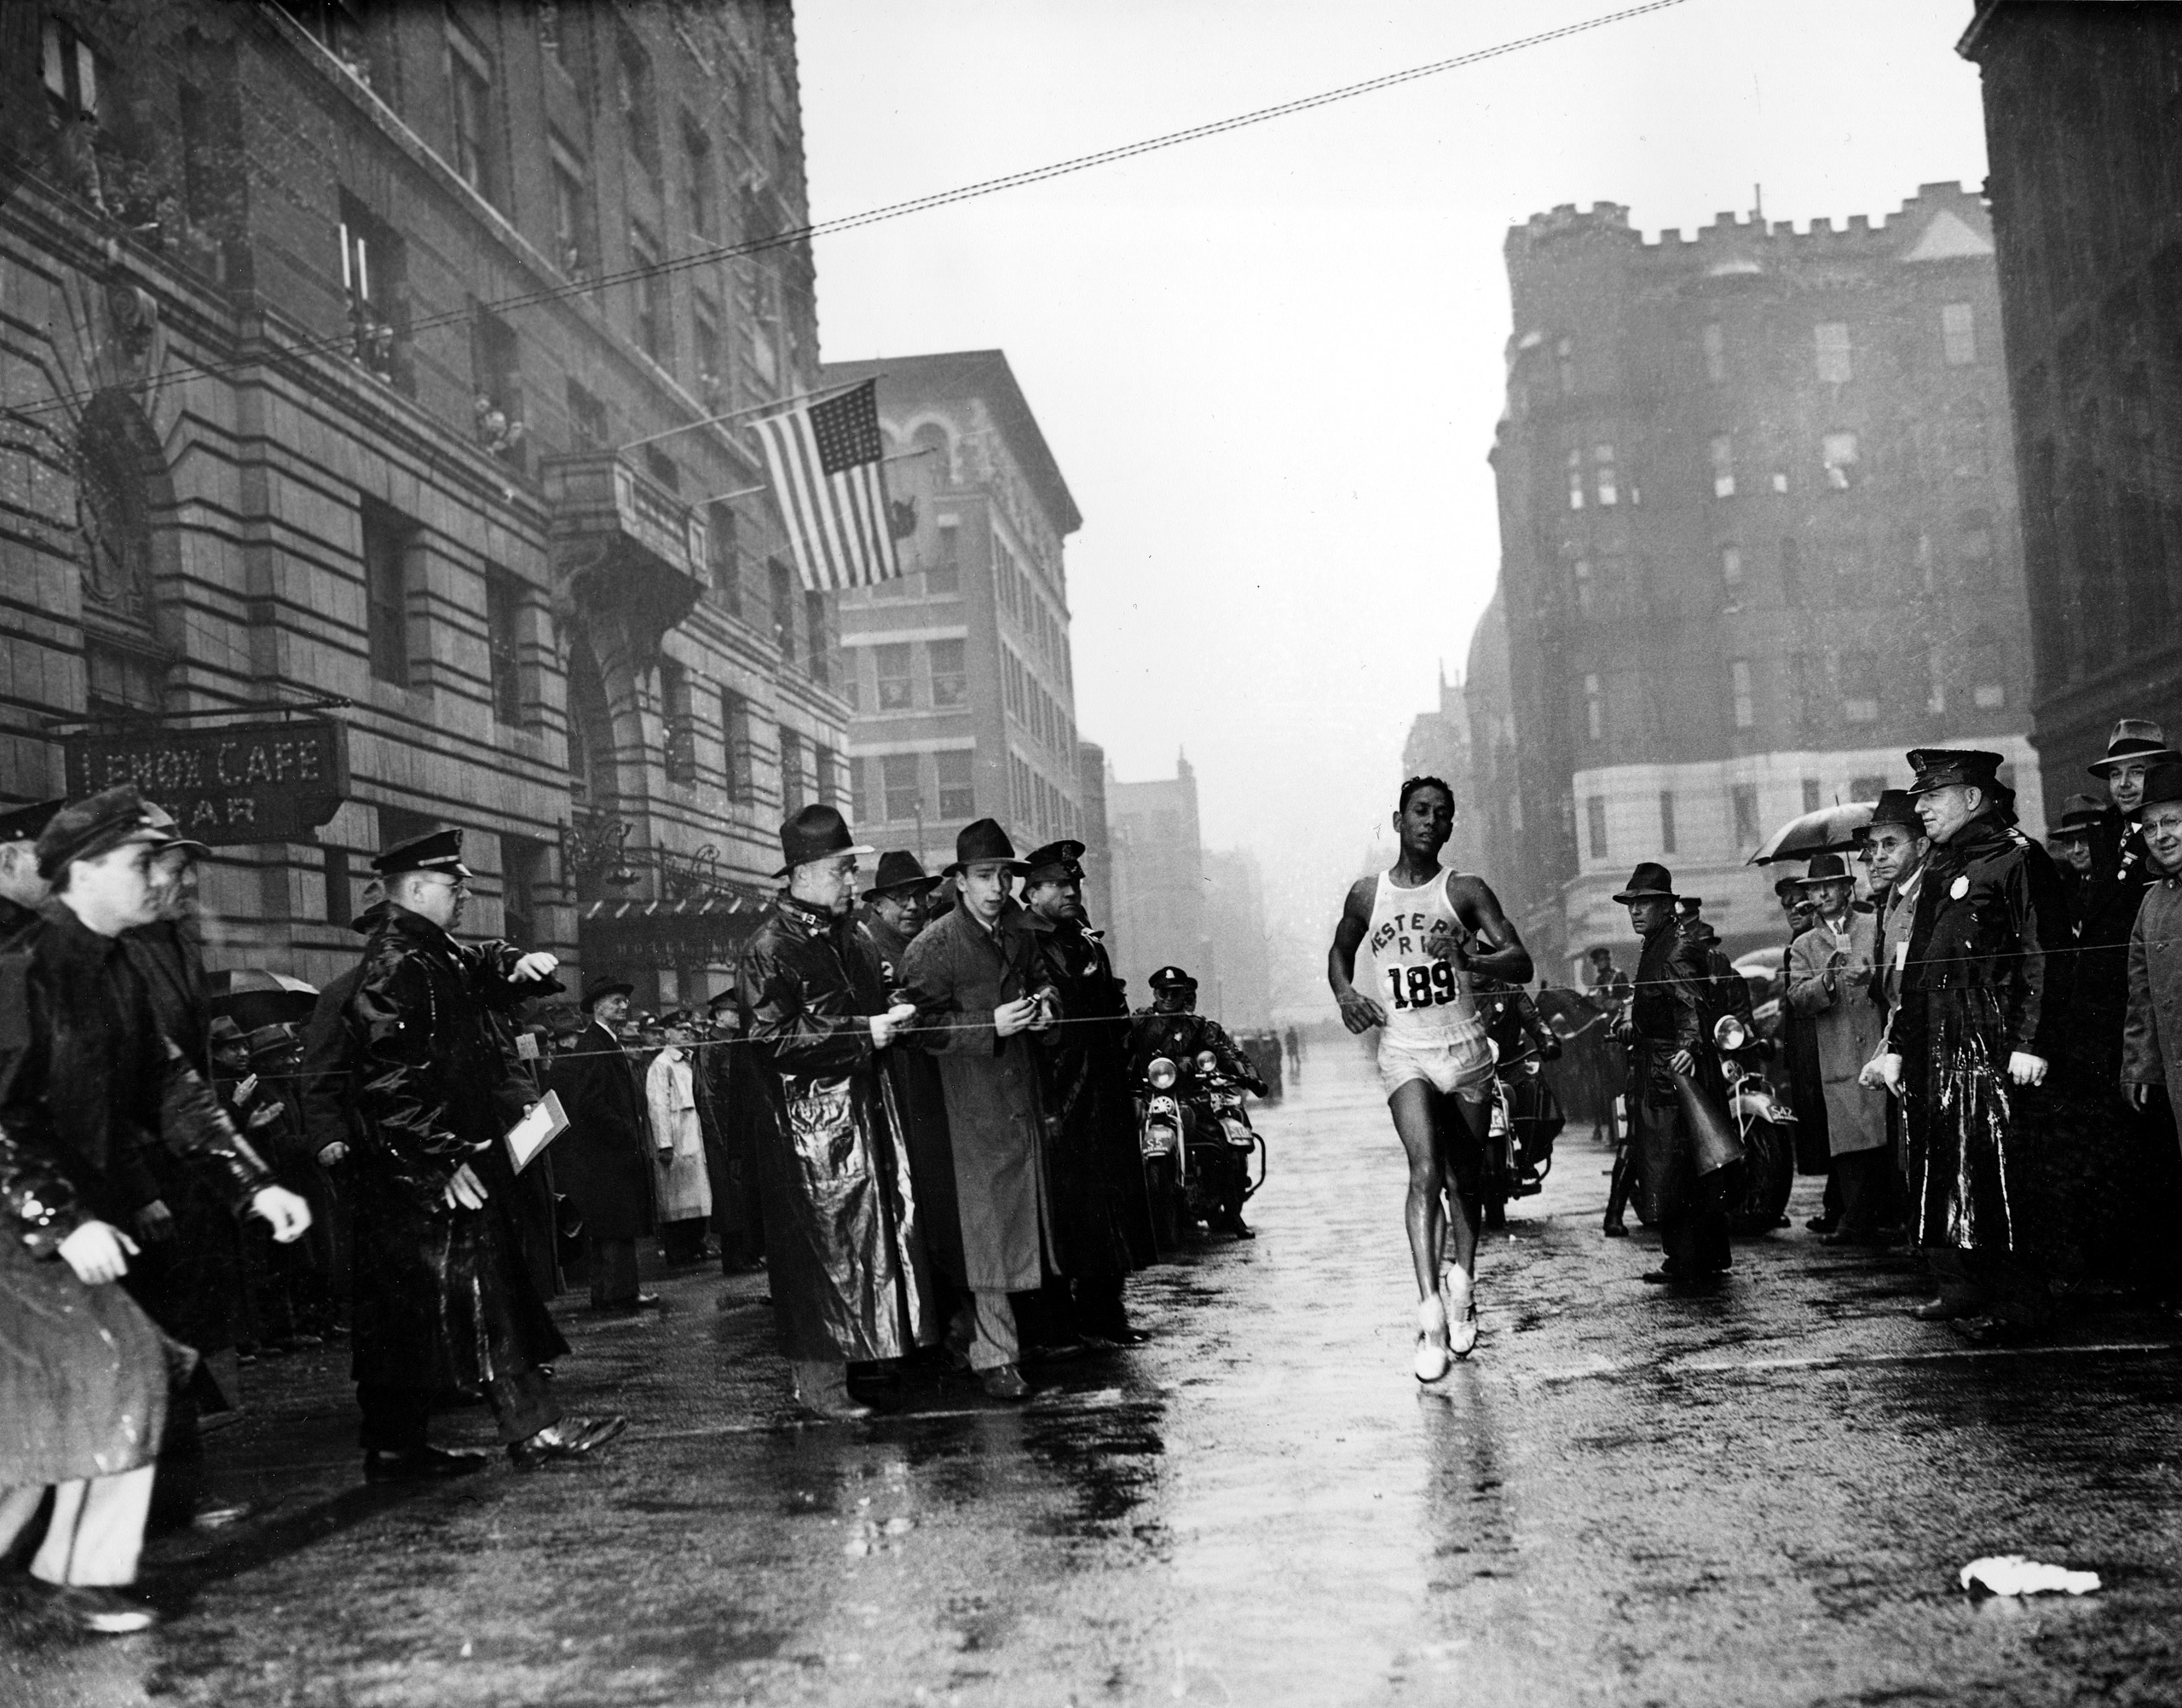 Ellison M.  Tarzan  Brown, from Alton, R.I., crosses the finish line in the 43rd Boston Marathon, in 1939. Brown finished the 26 miles, 385 yards in 2 hours, 28 minutes and 51.8 seconds, breaking the marathon world record.